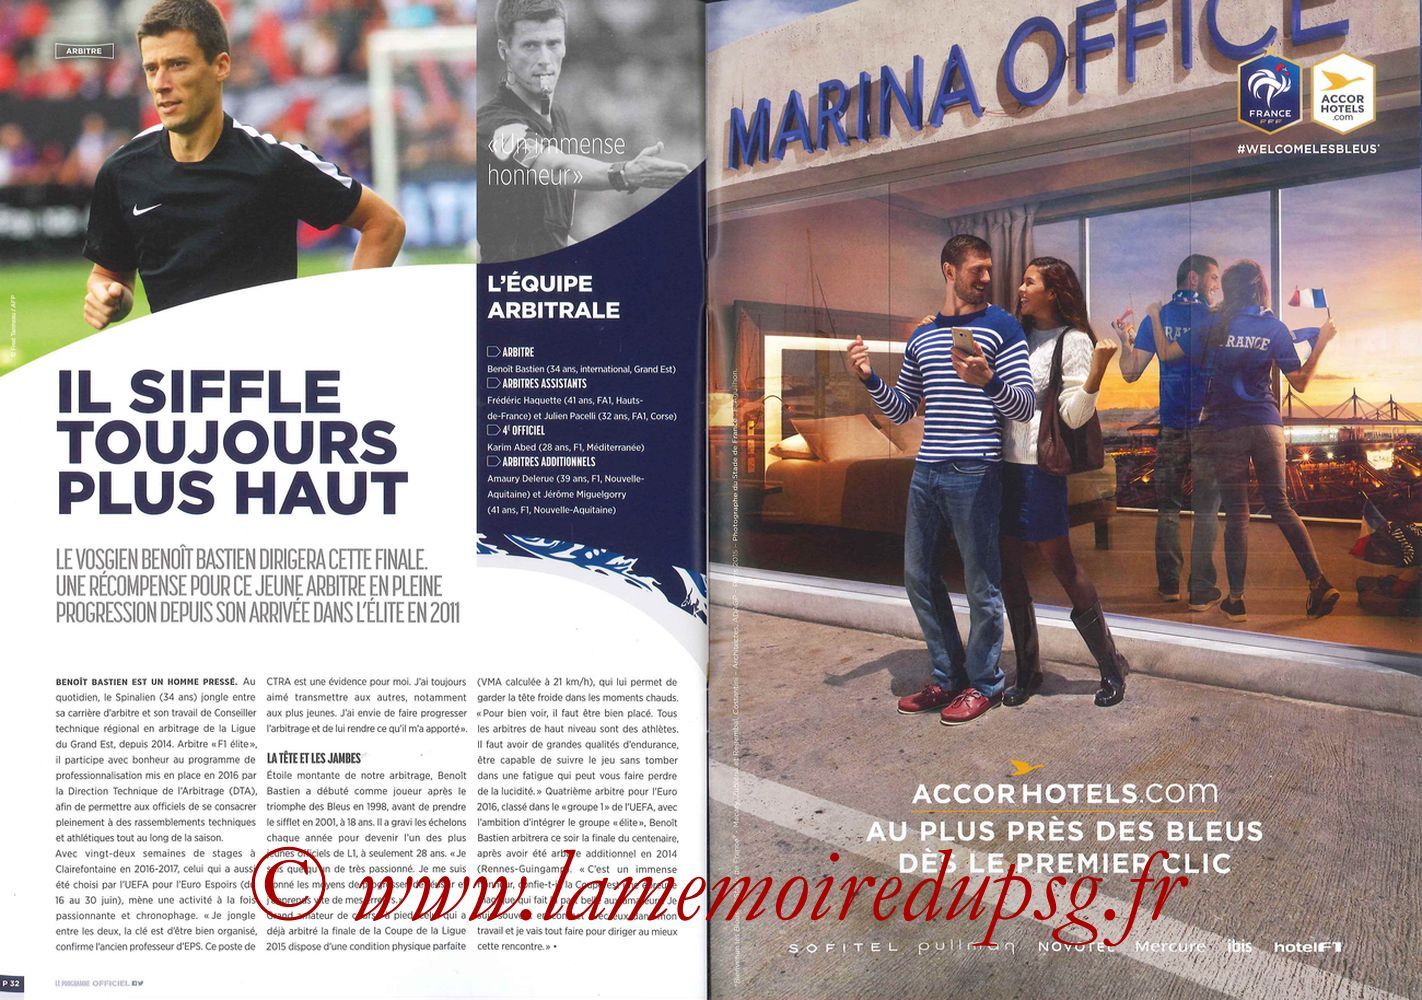 2017-05-27  Angers-PSG (Finale CF à Saint-Denis, Programme officiel) - Pages 32 et 33